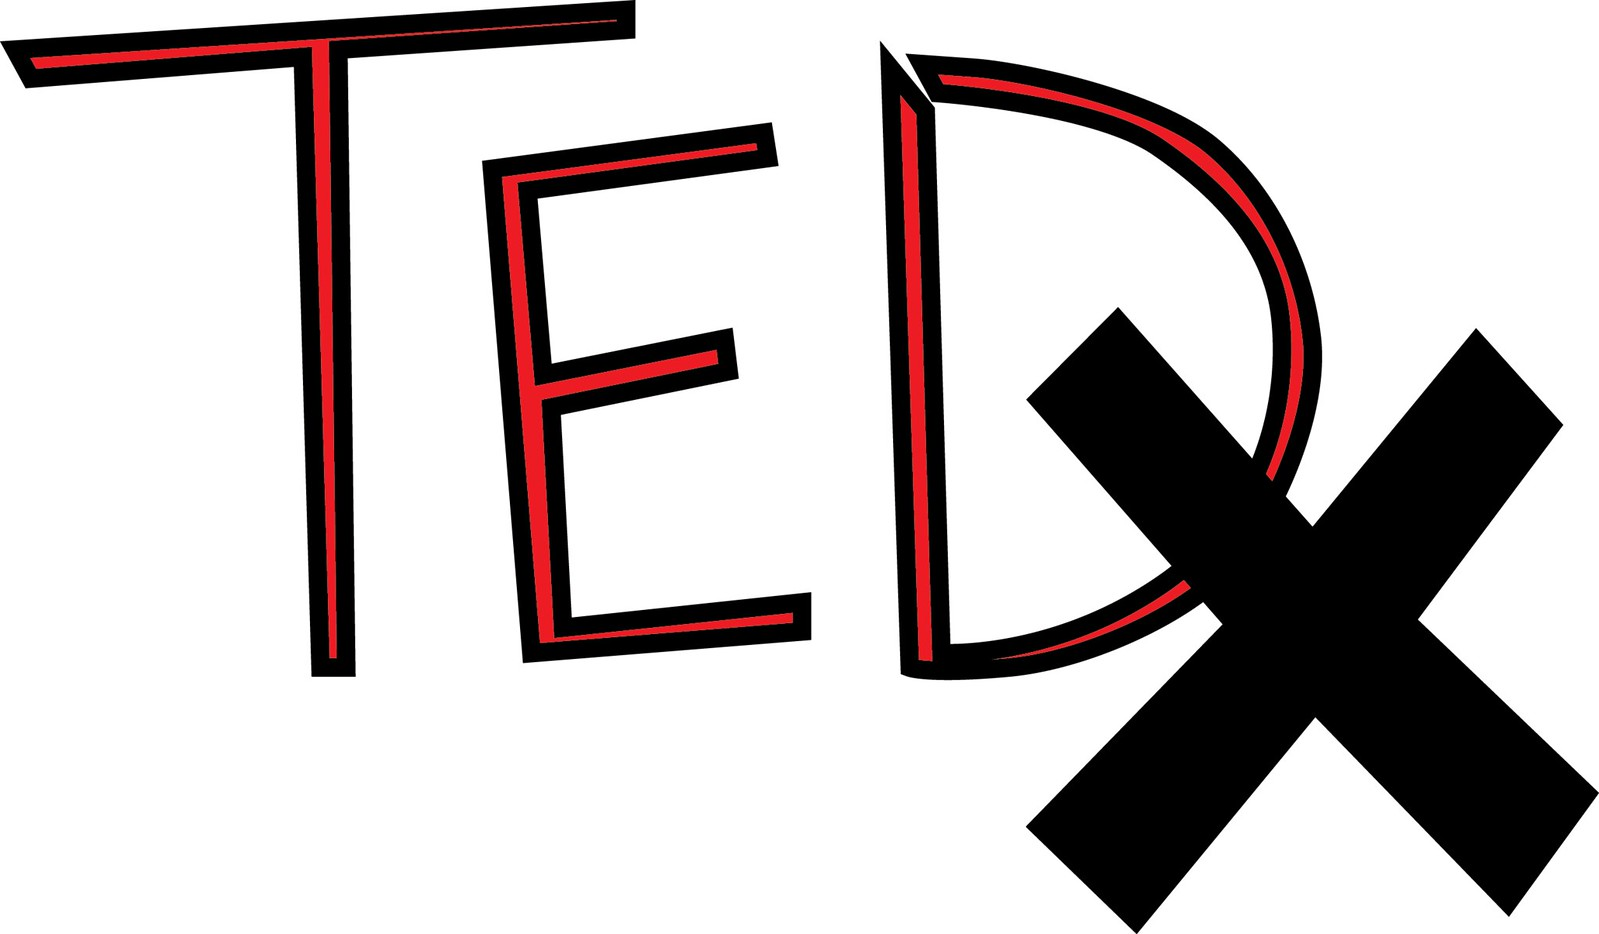 TEDx looking to spread the idea for speakers to apply